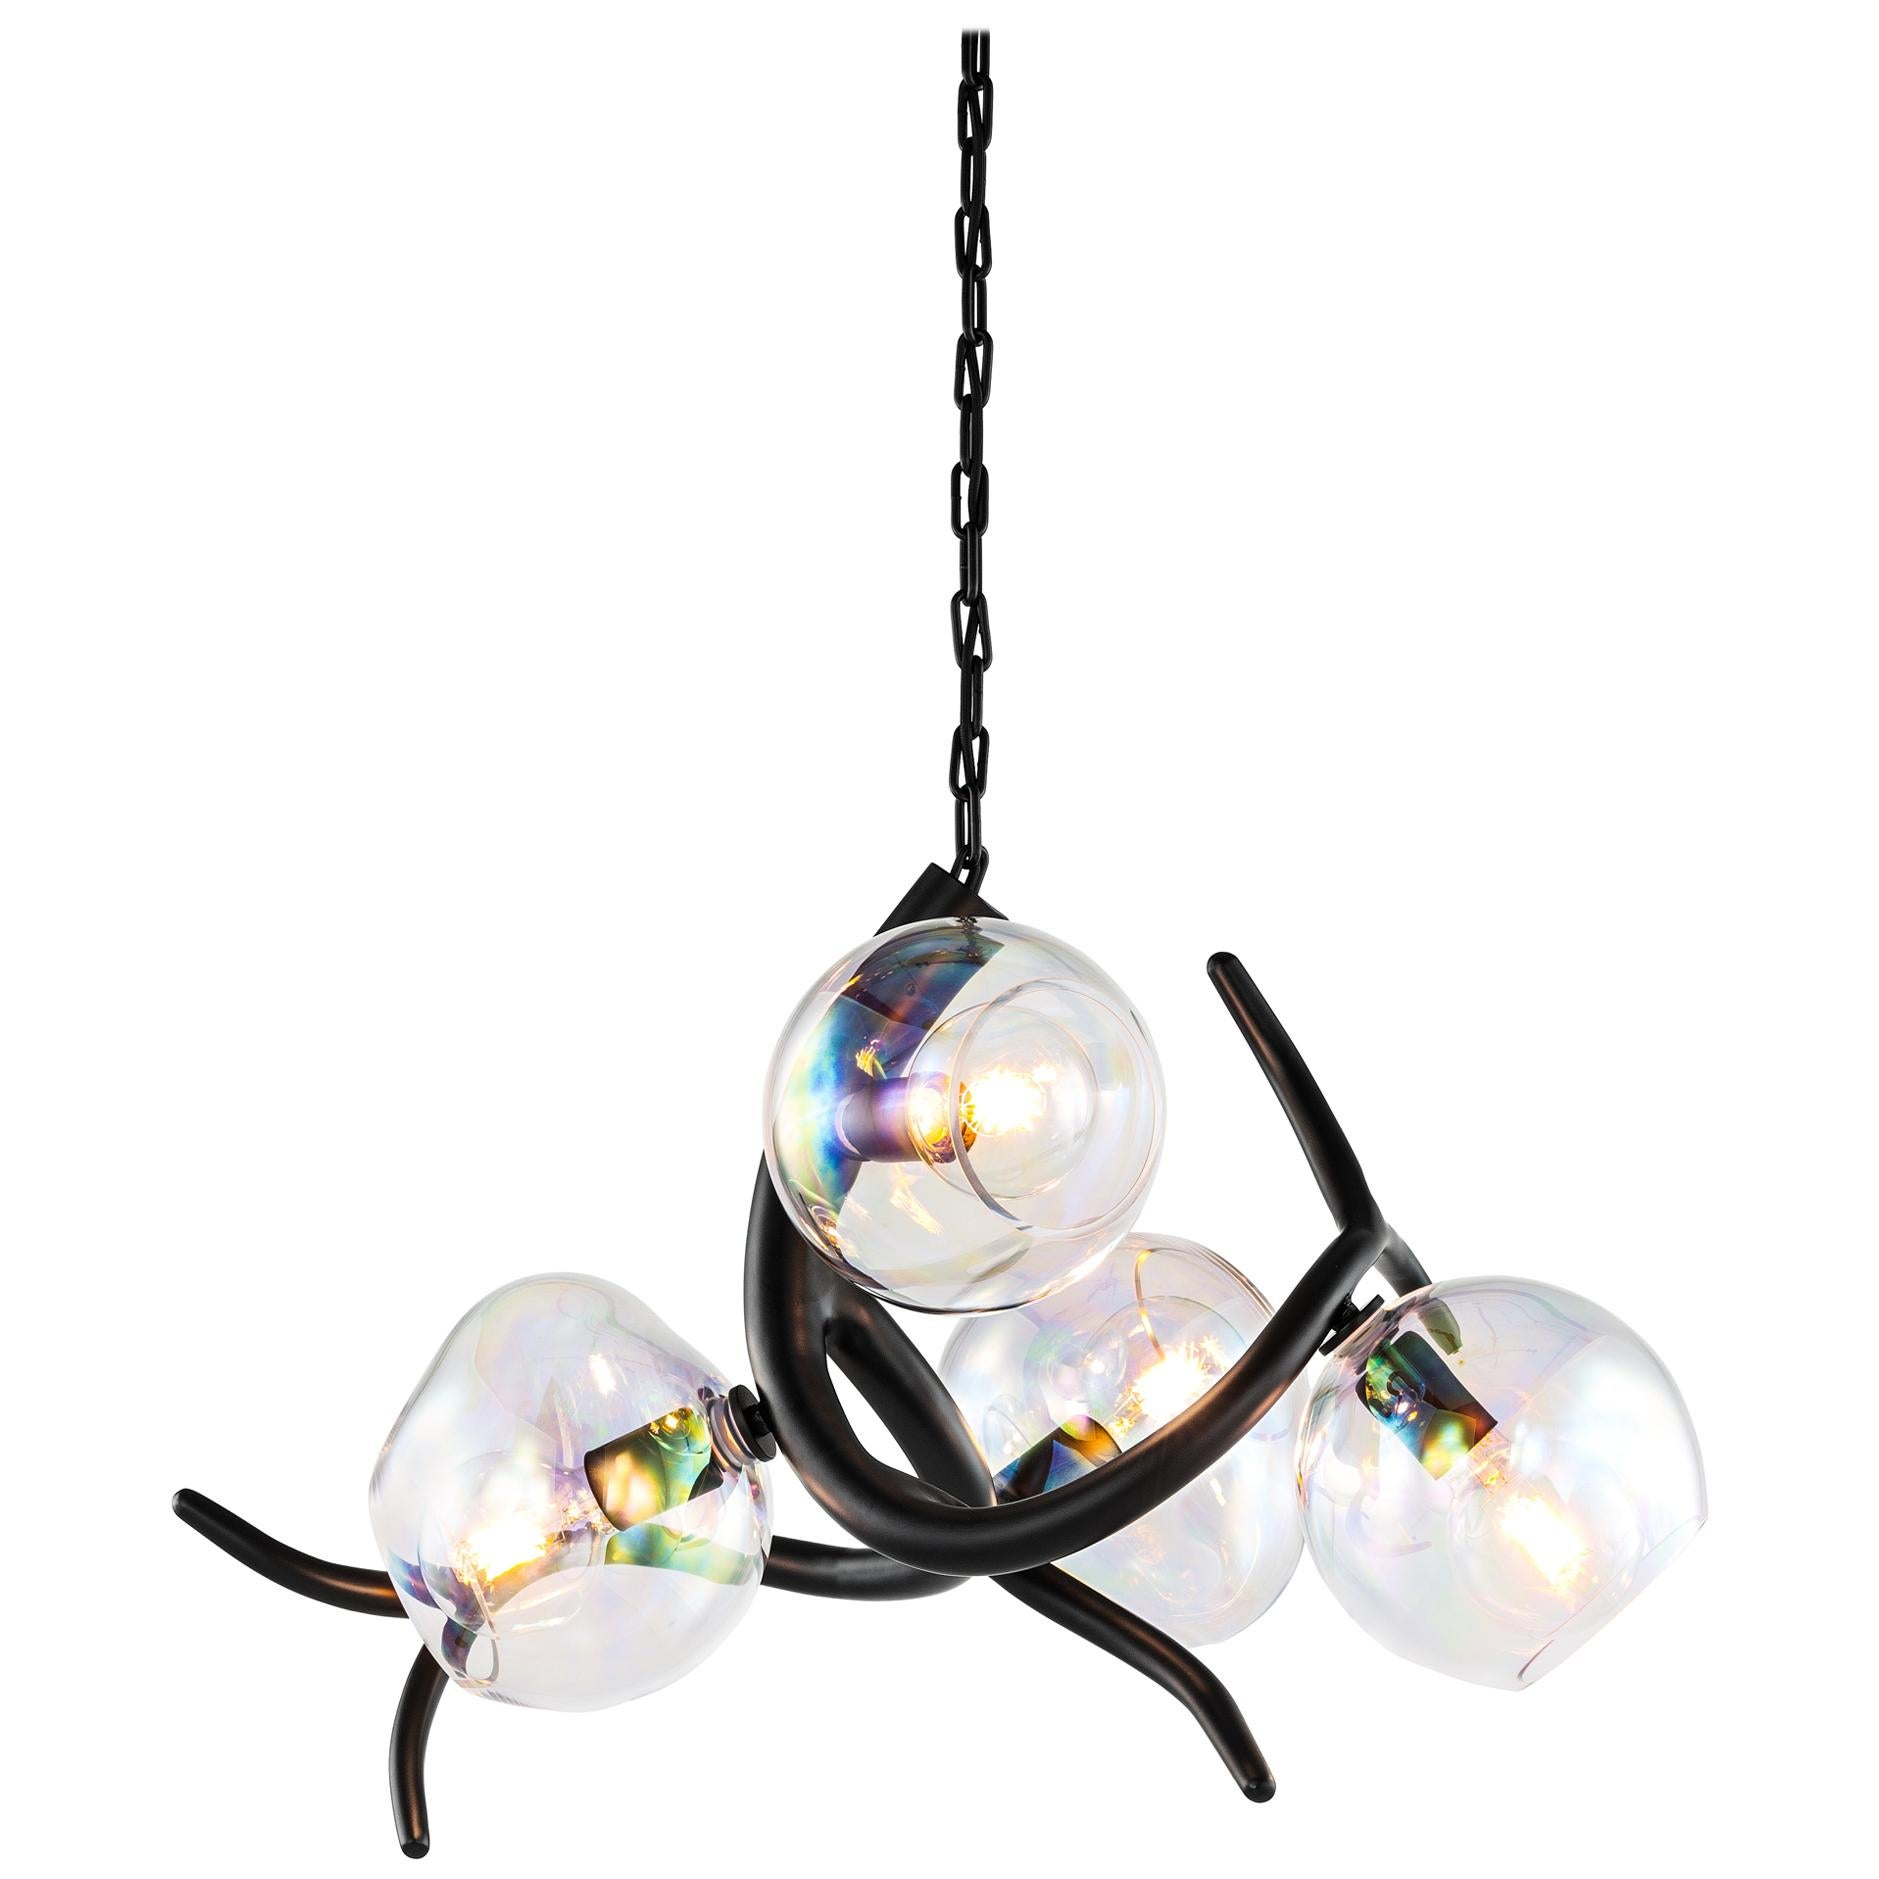 Modern Pendant with Colored Glass in a Black Matt Burnished Finish, Ersa